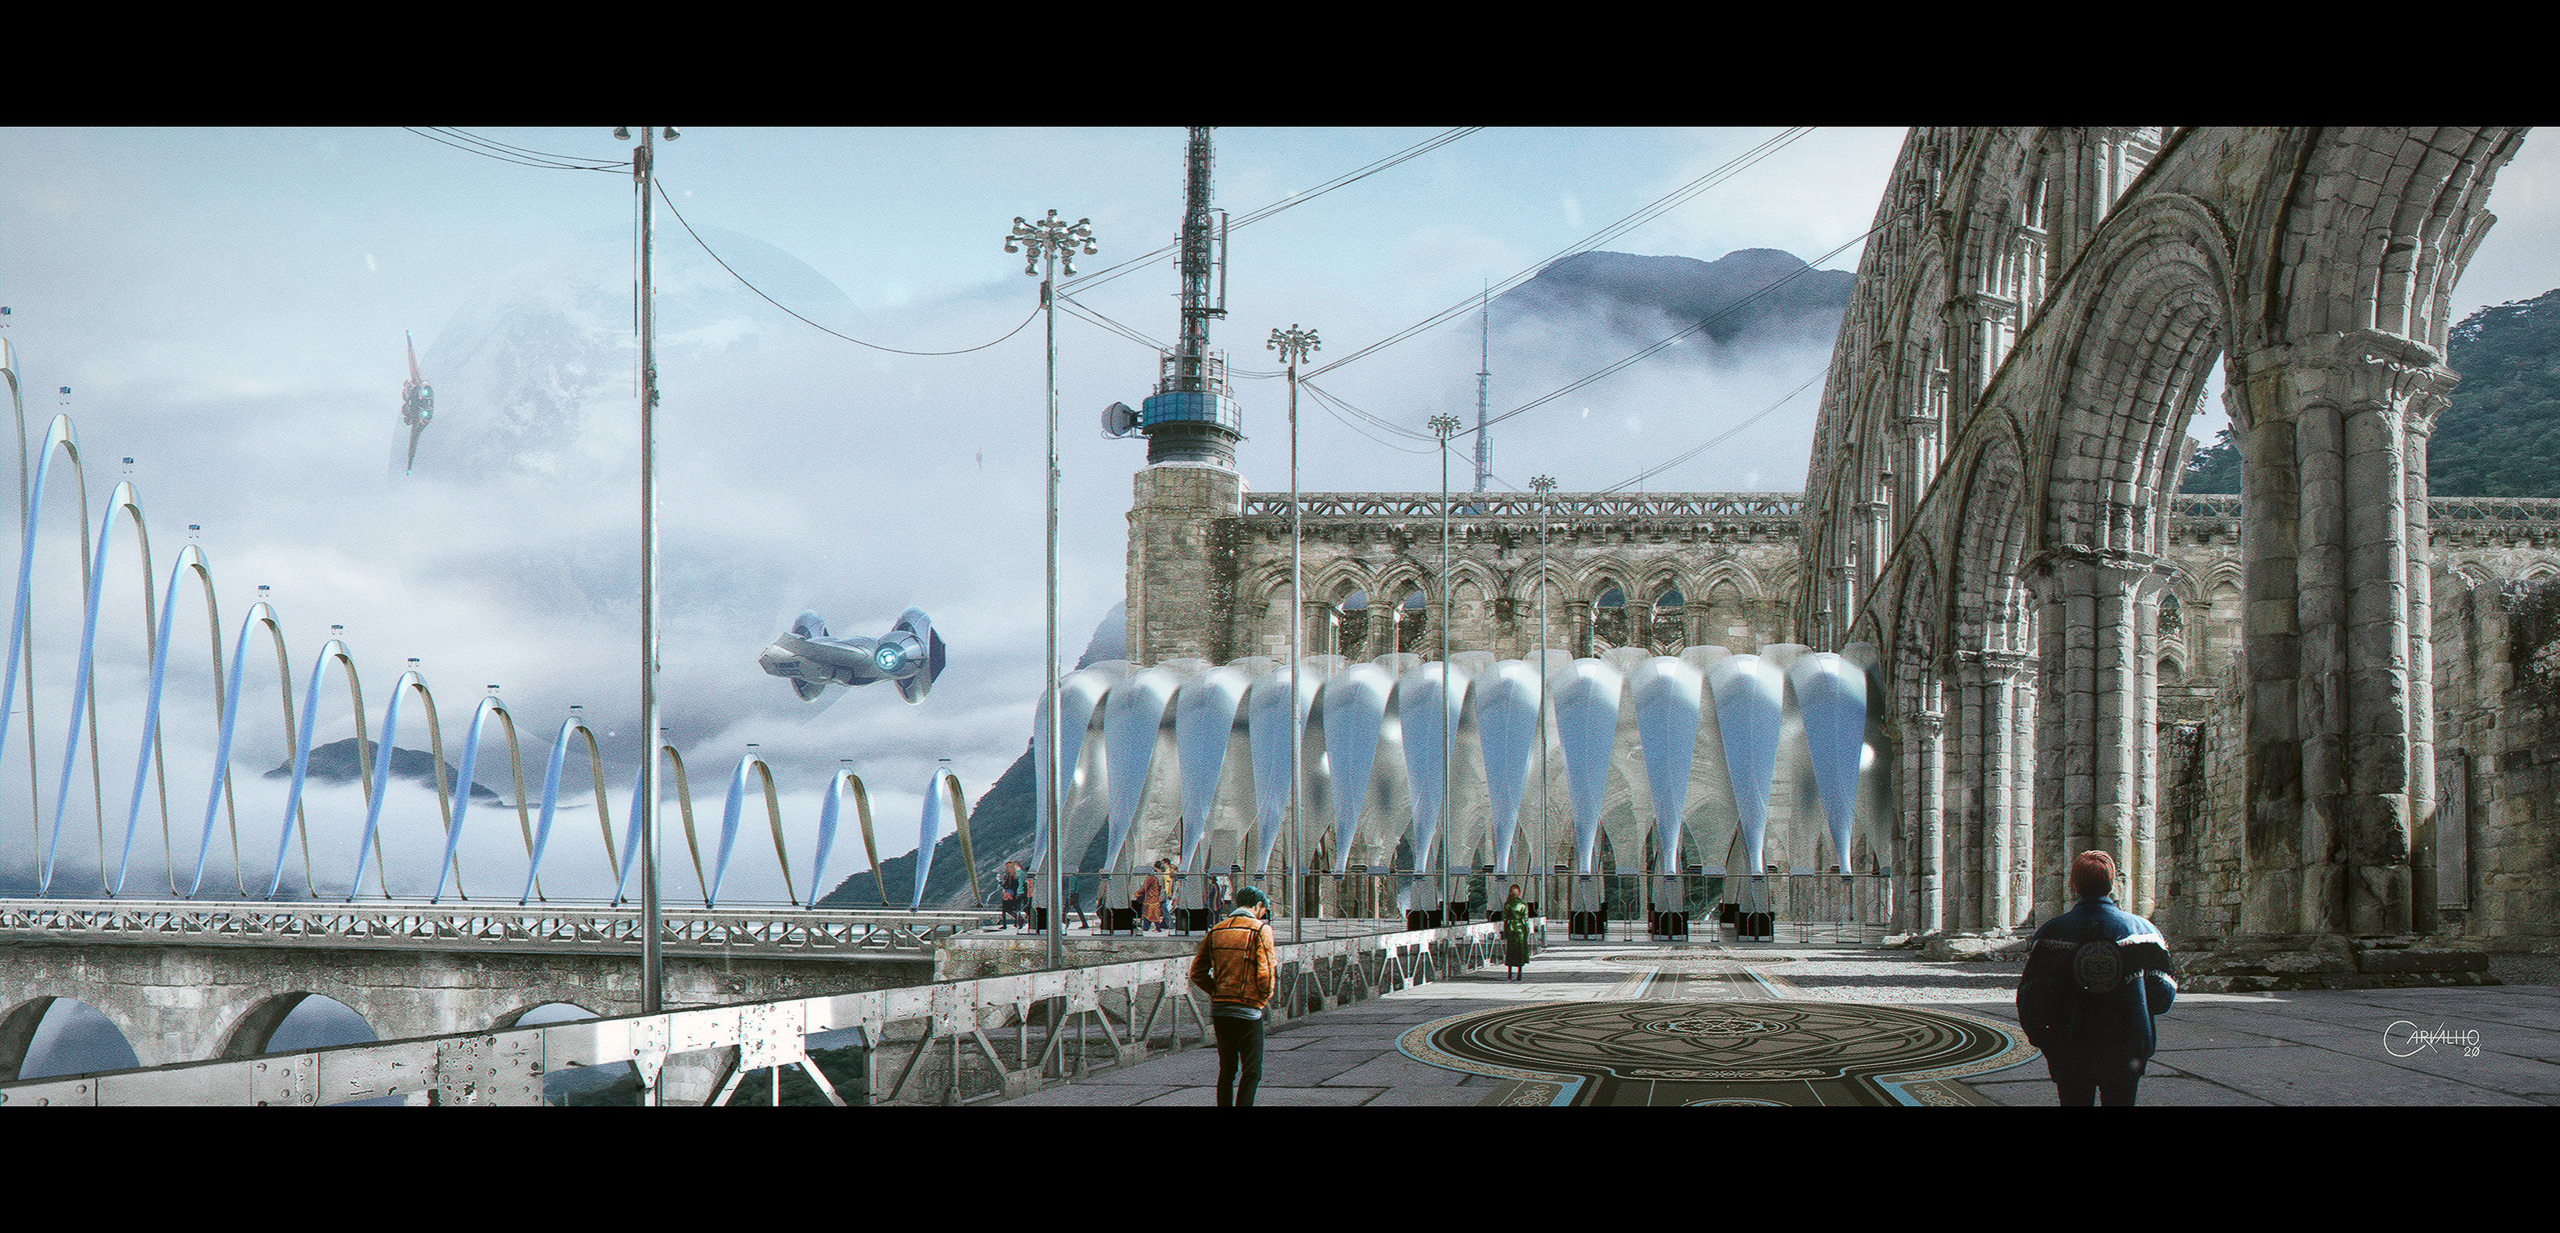 SkyPort_01_2560px_by_hellodave_co2